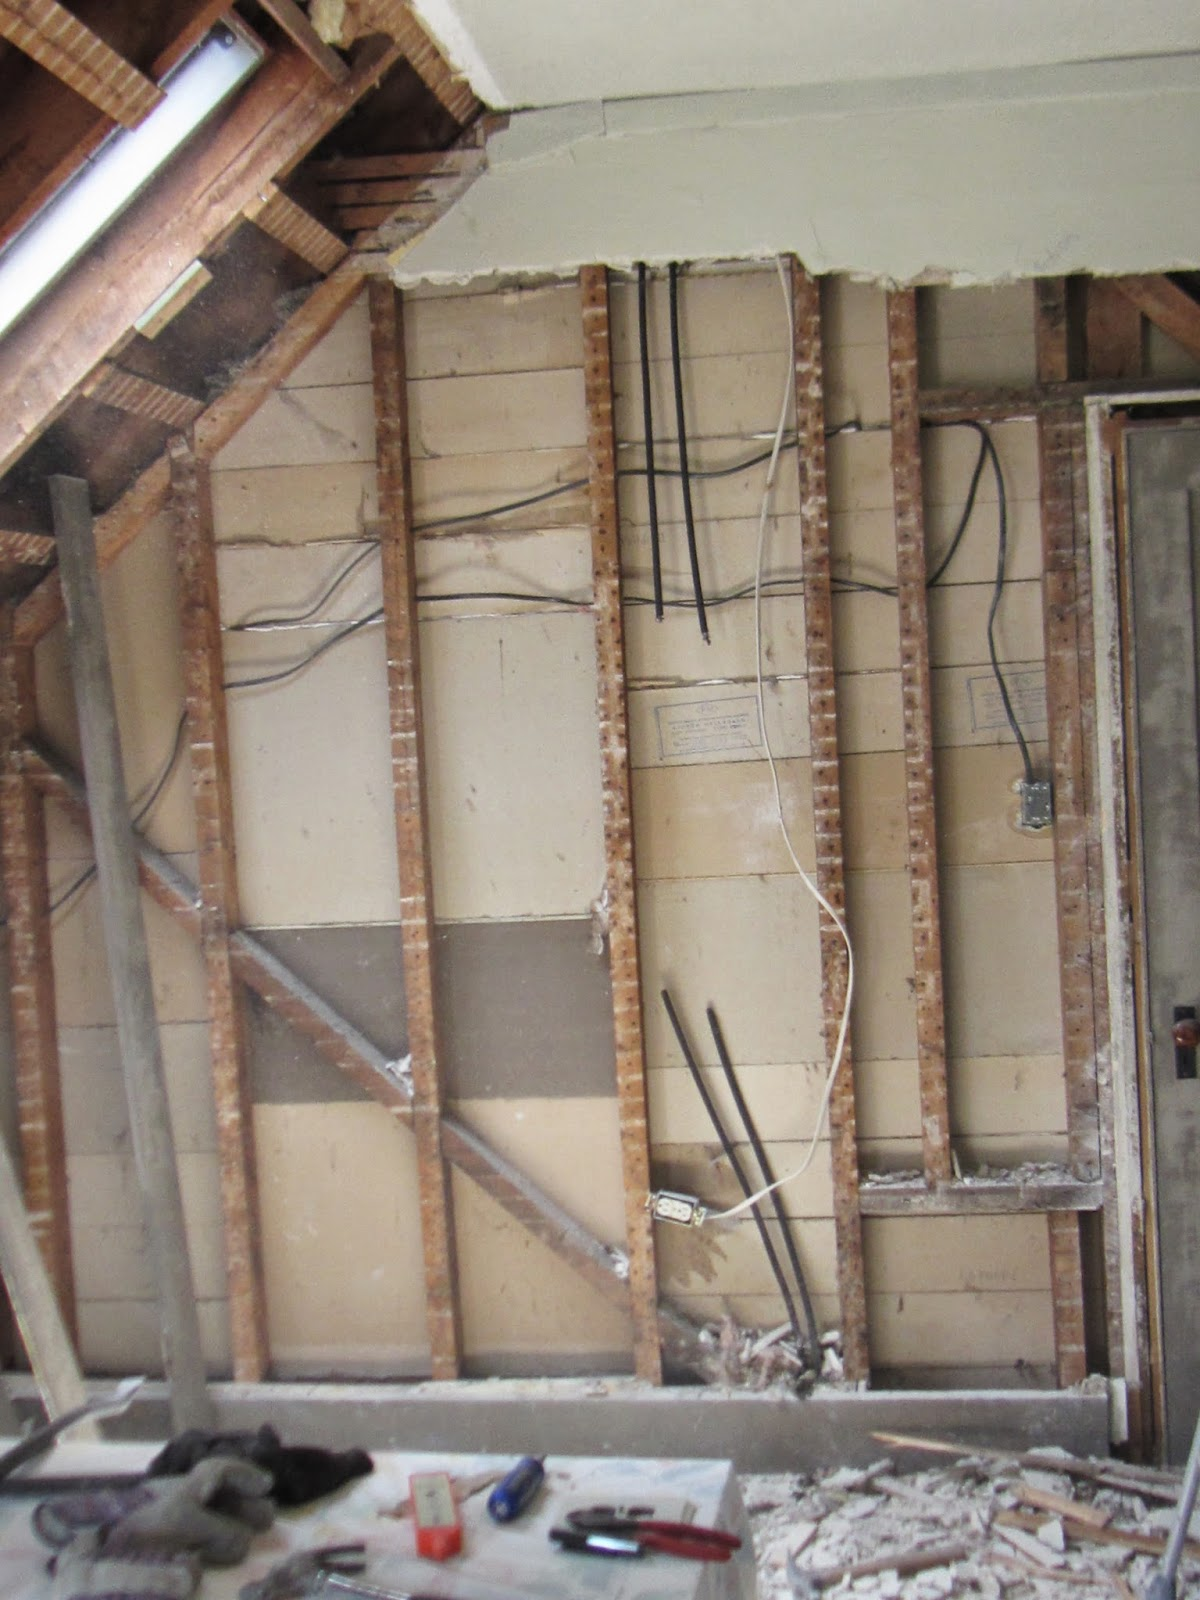 Modern Life In An Antique Farmhouse Wiring Old The Back Wall With Funky Electrical Wires Some Live And Dead Ended